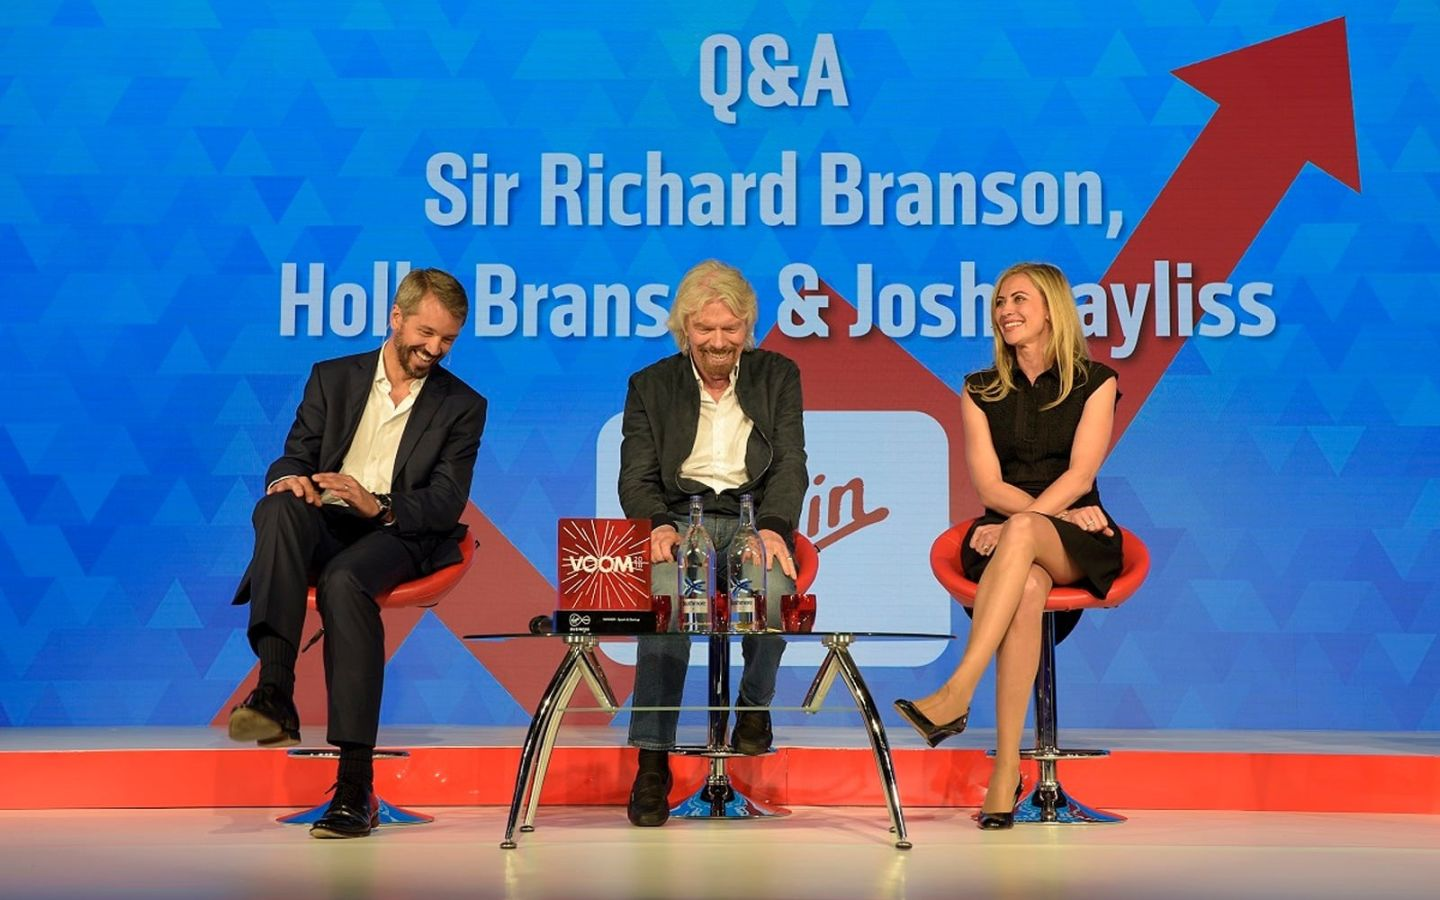 Richard Branson, Holly Branson and Josh Bayliss sit on stage ready for their Q&A session